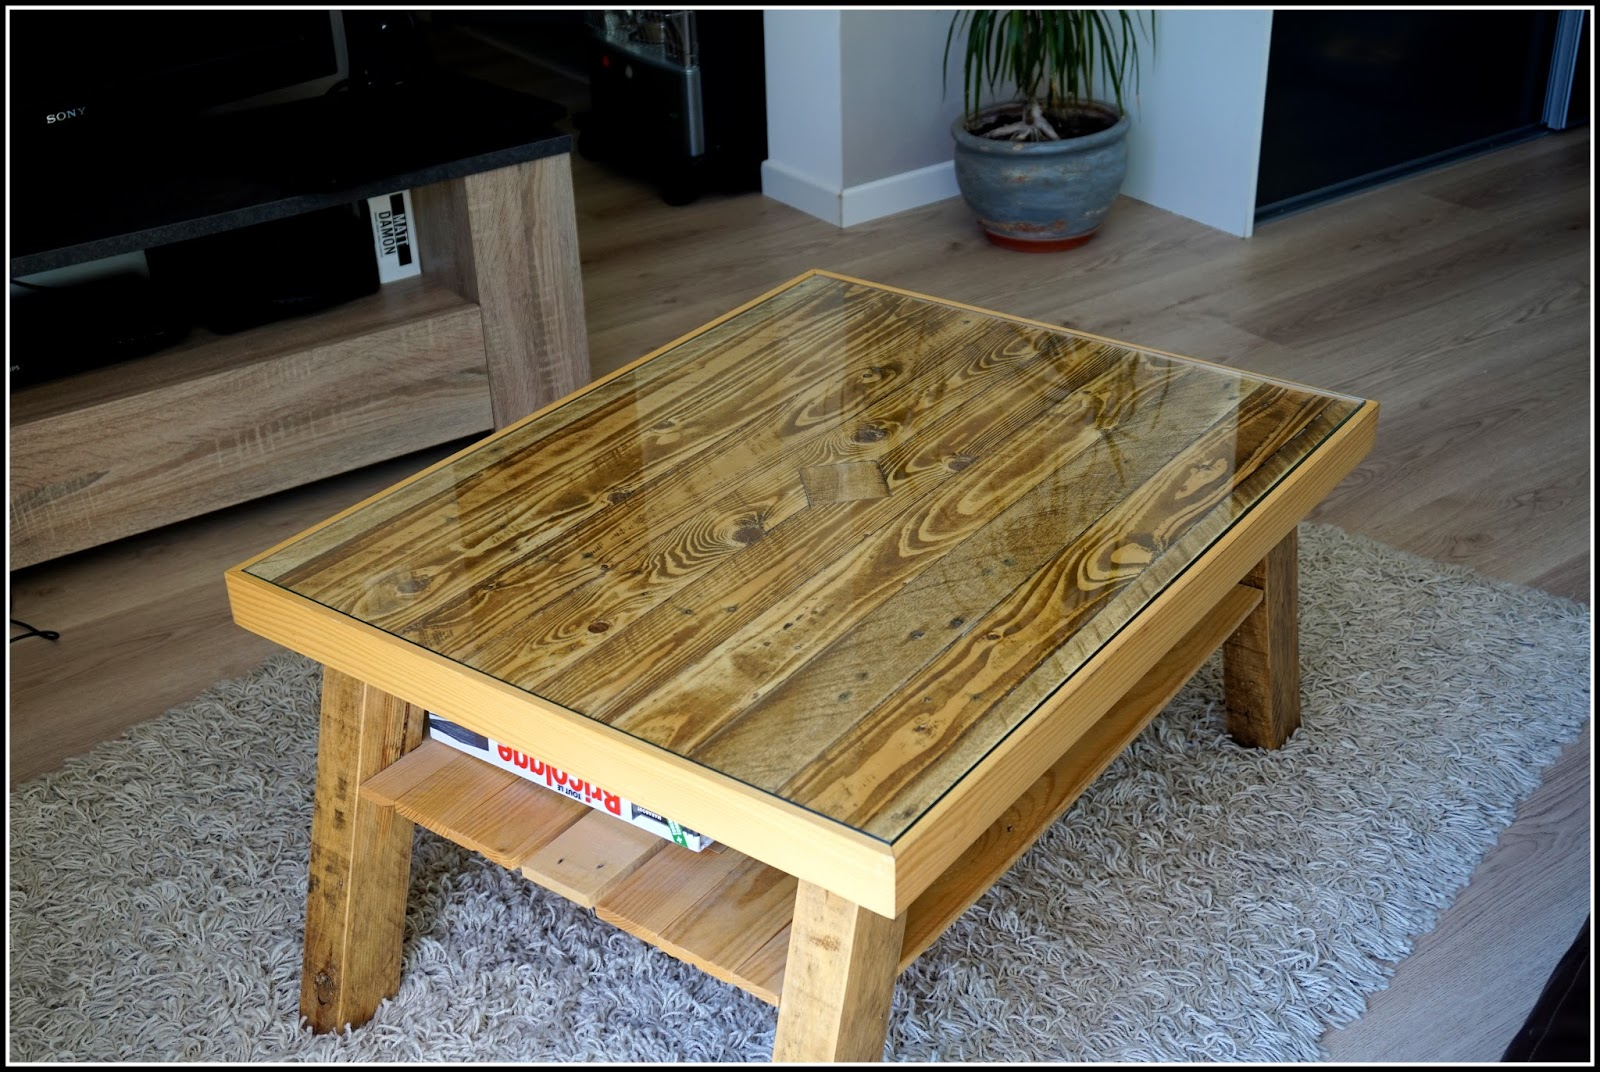 Comment faire une table basse en palette - Comment patiner une table basse en bois ...